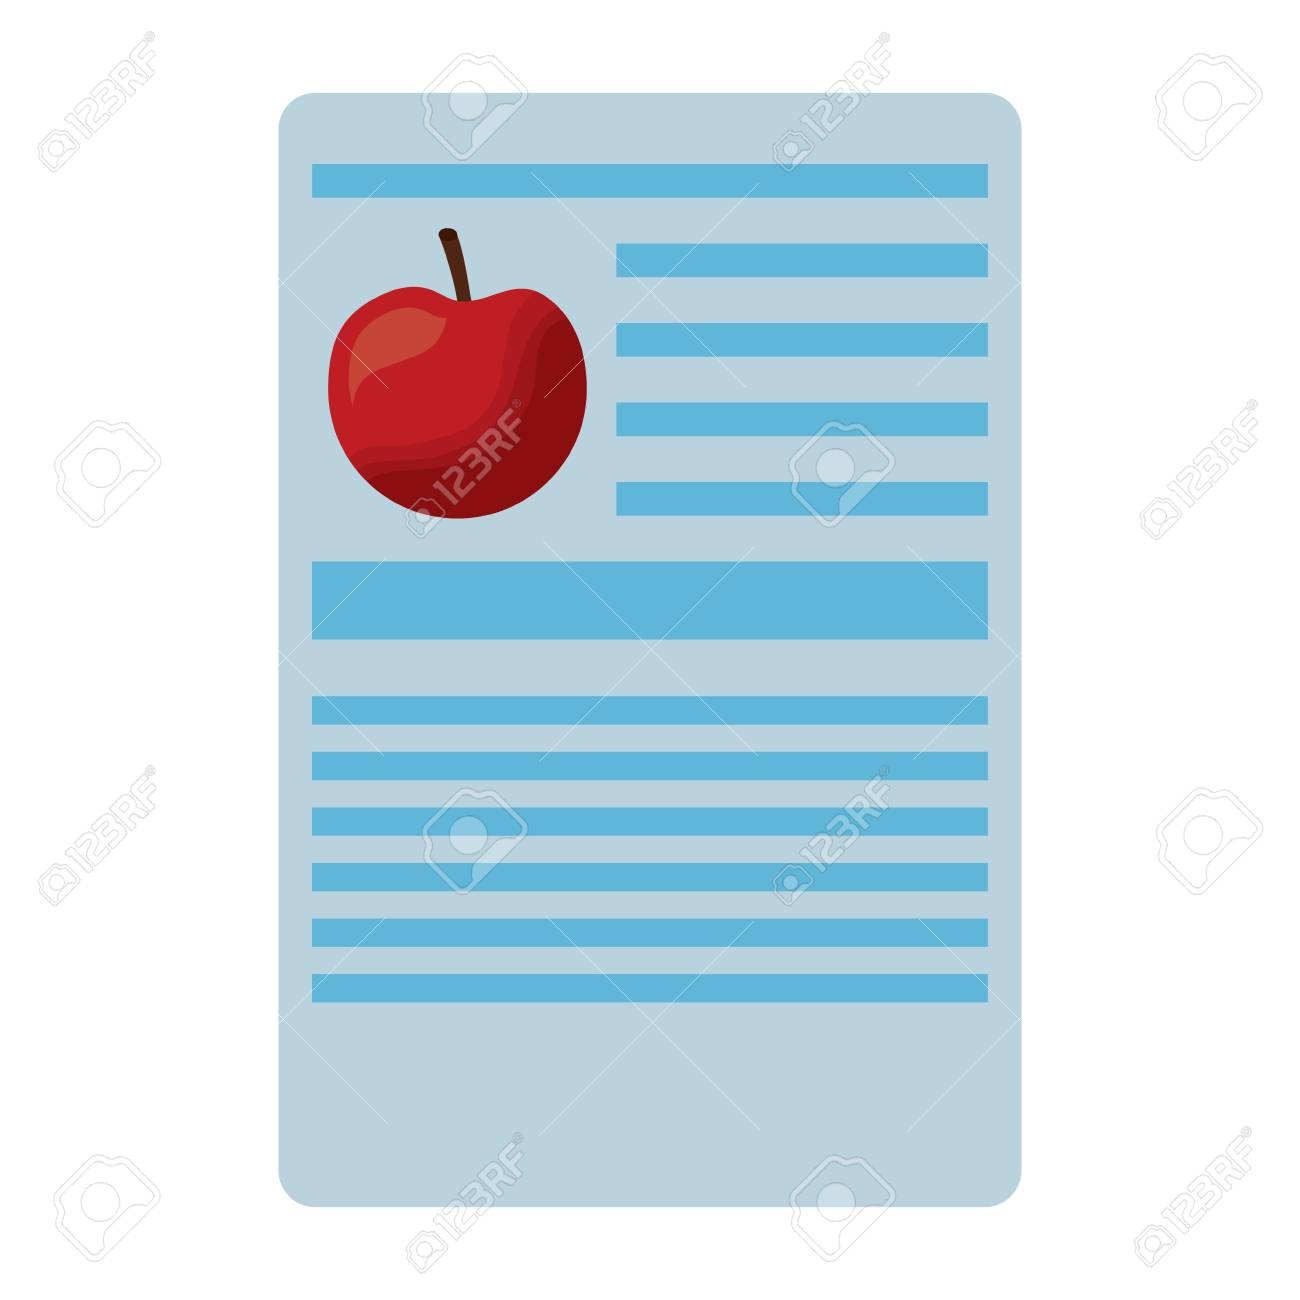 apple nutrition facts label template vector illustration royalty